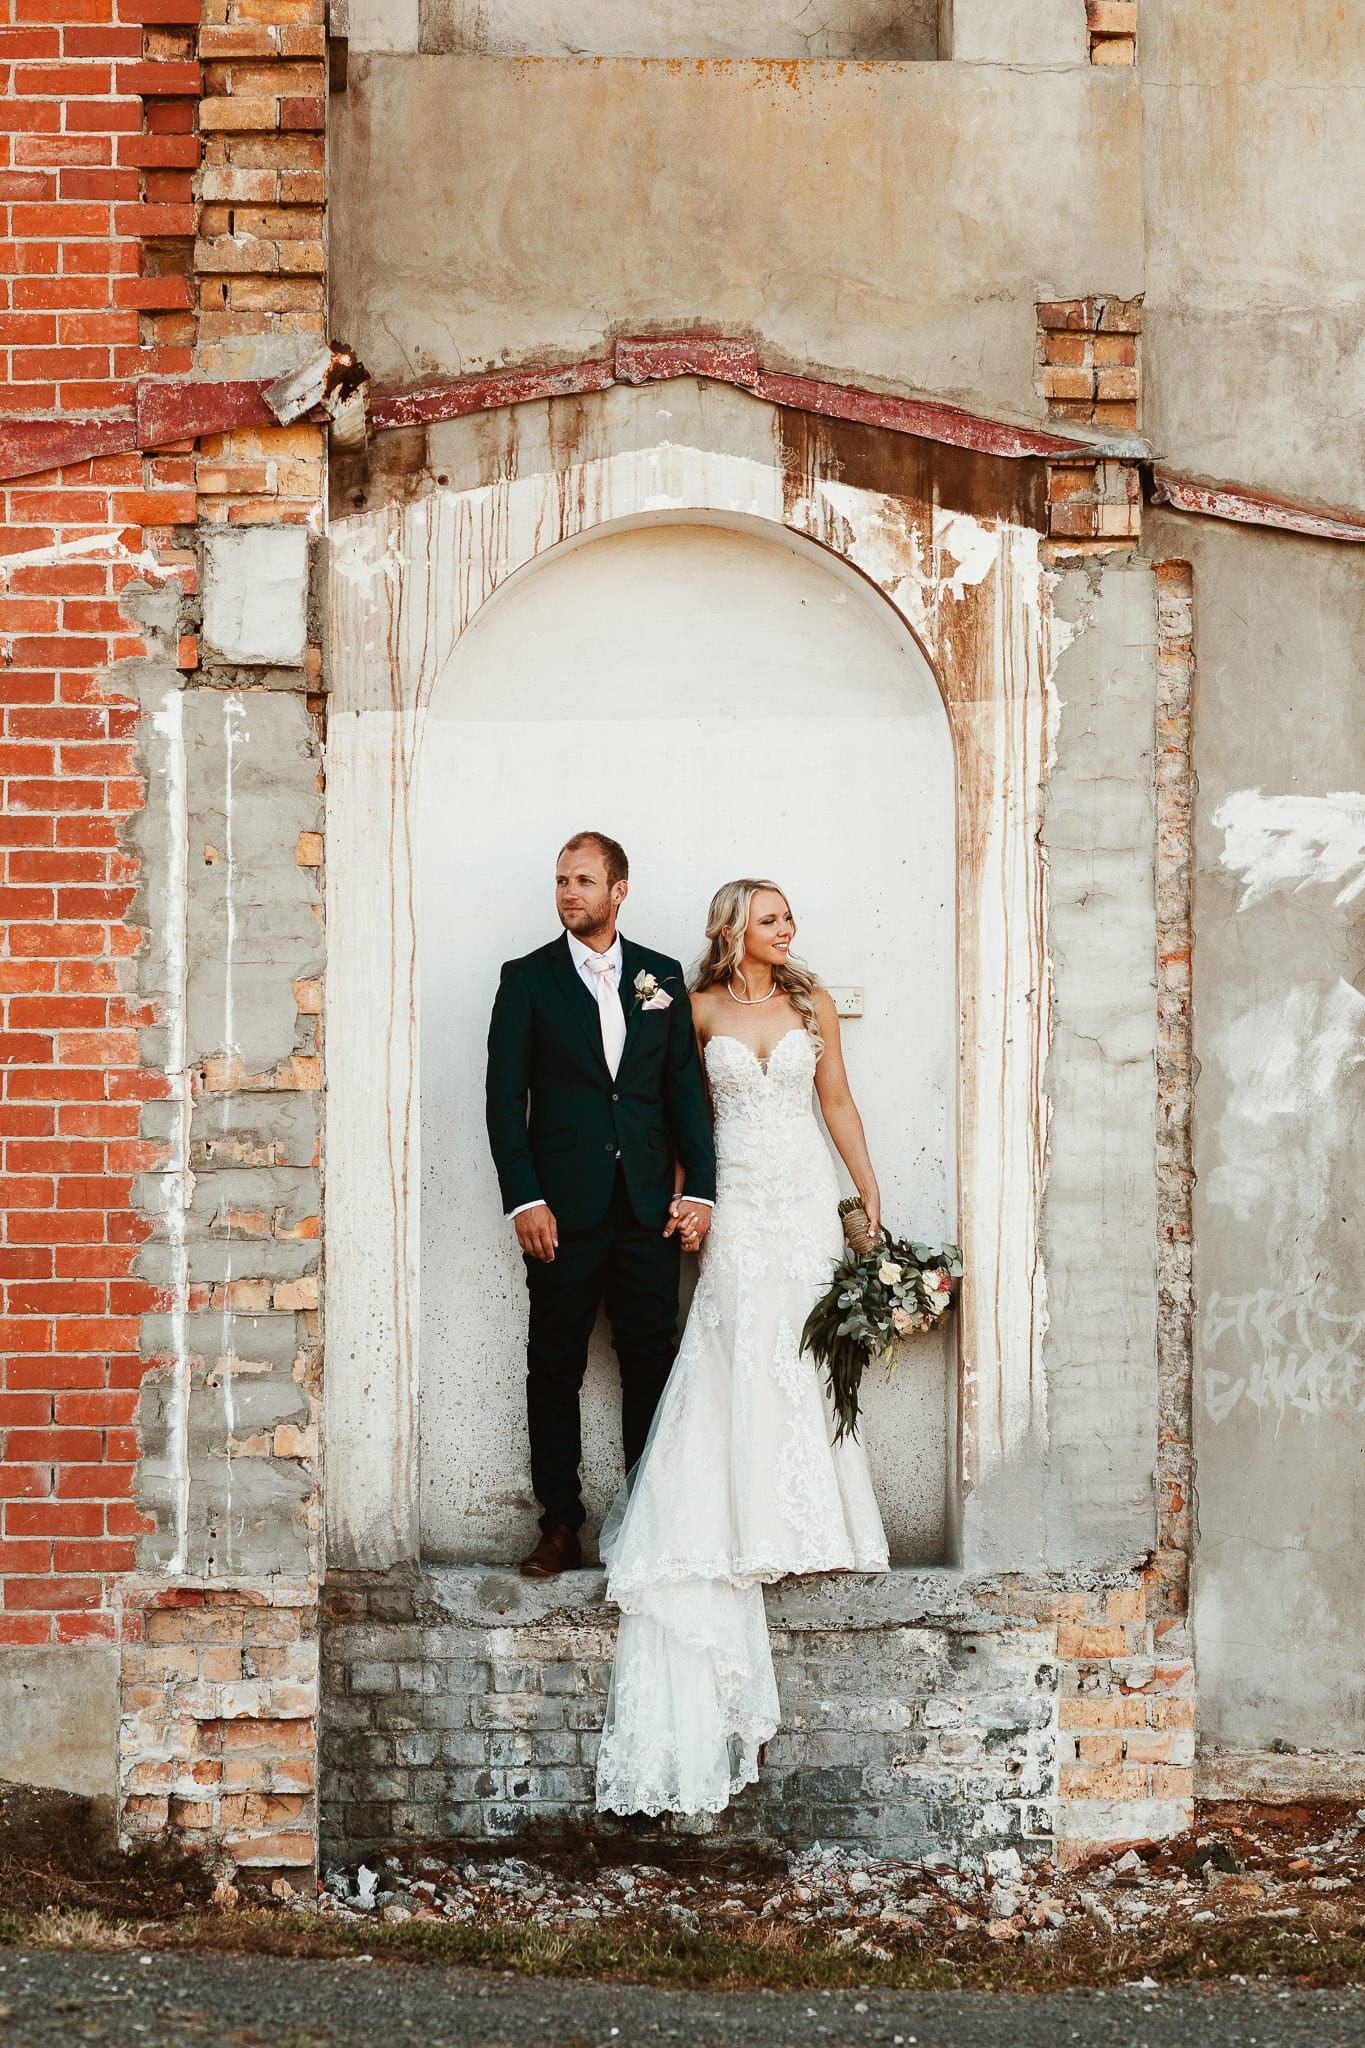 Wedding Photographer based in New Zealand, Anchor & Grace, Anchor & Grace